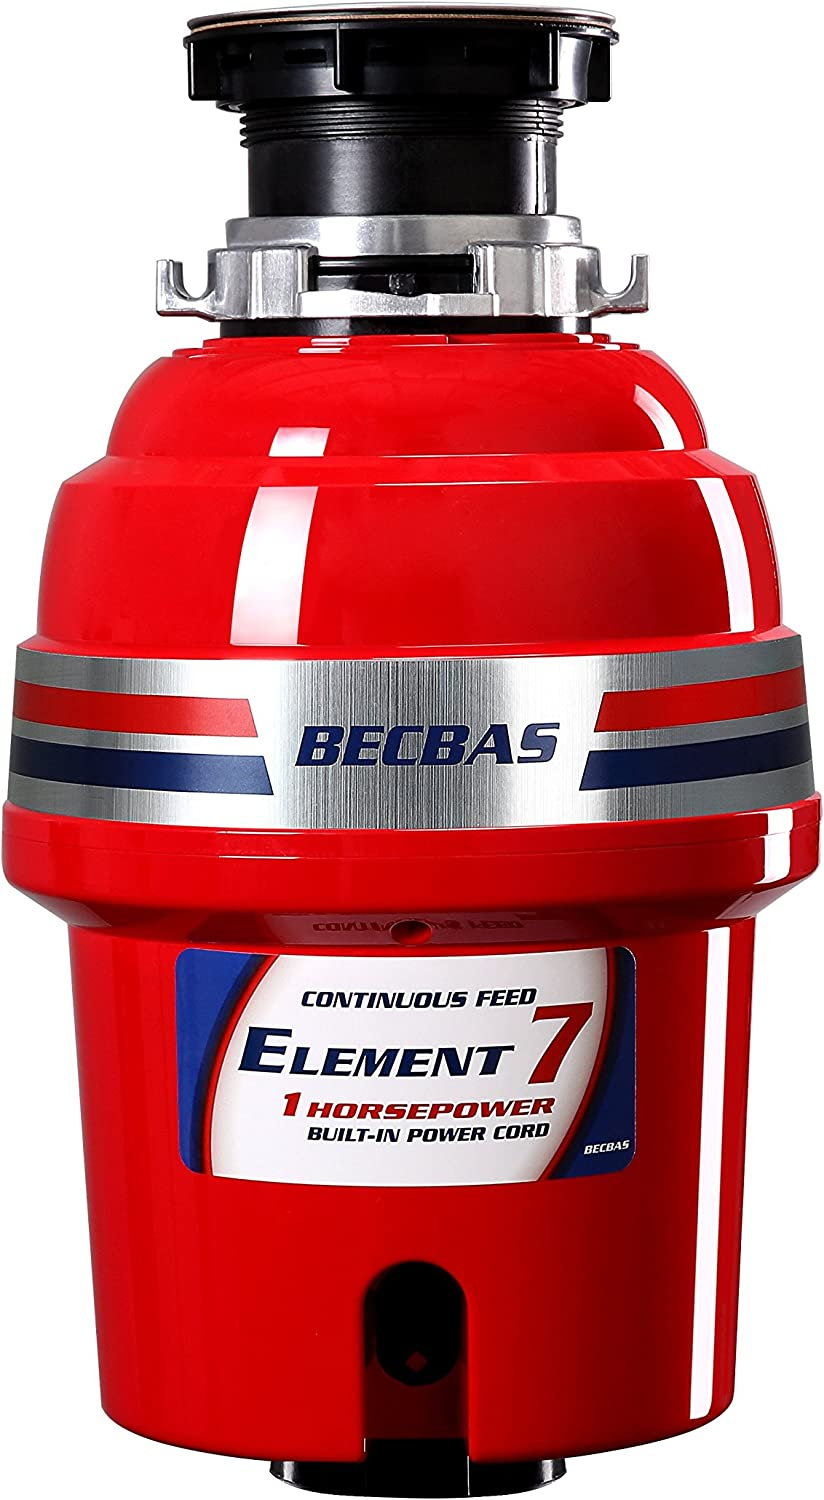 BECBAS ELEMENT 7 Garbage Disposal,1HP Foo Super beauty product restock quality top! Dedication 2700RPM Household